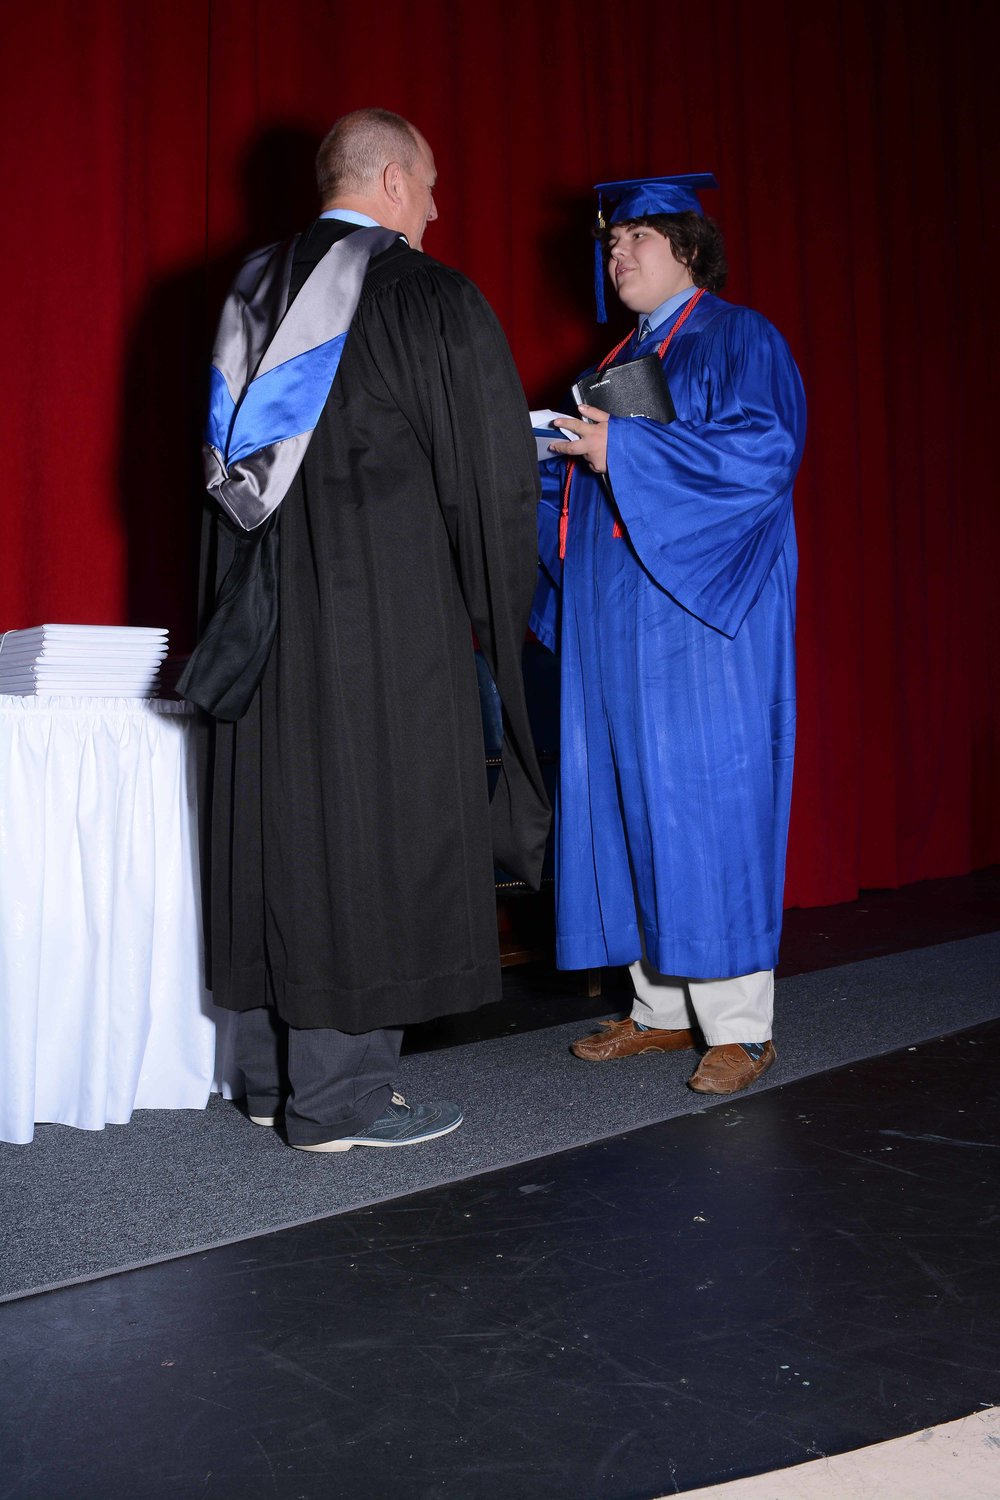 May14 Commencement50.jpg